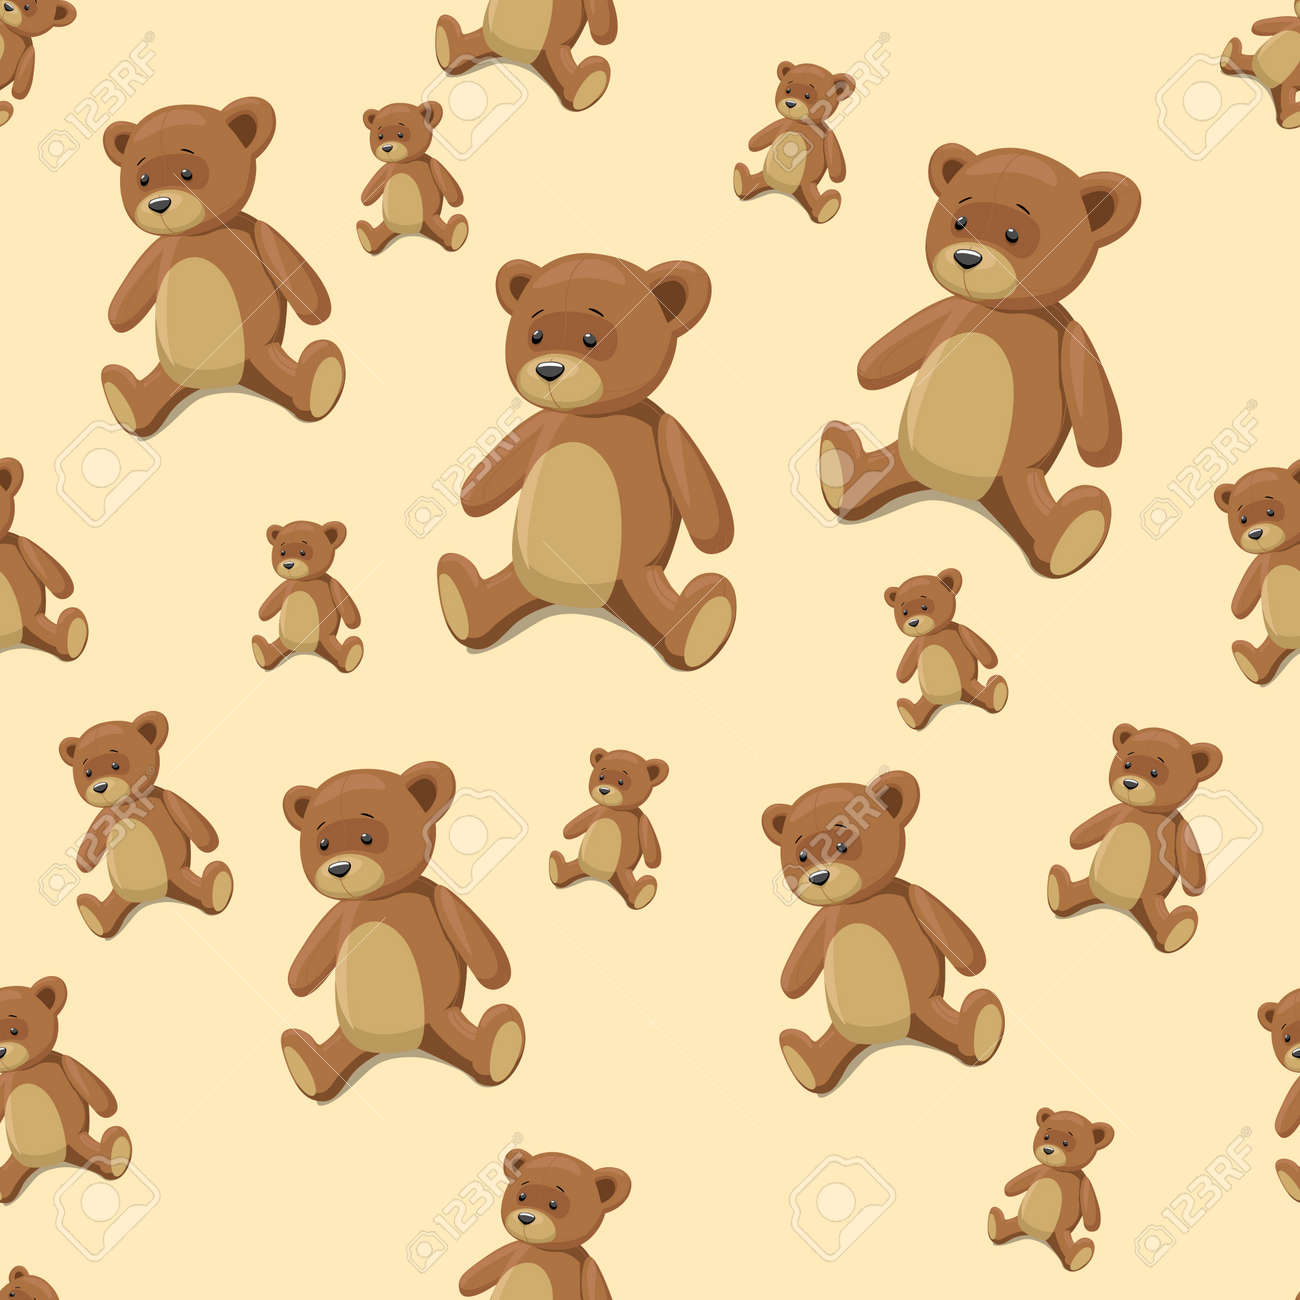 Seamless Pattern Background Teddy Bear Toy Cartoon Hand Drawn